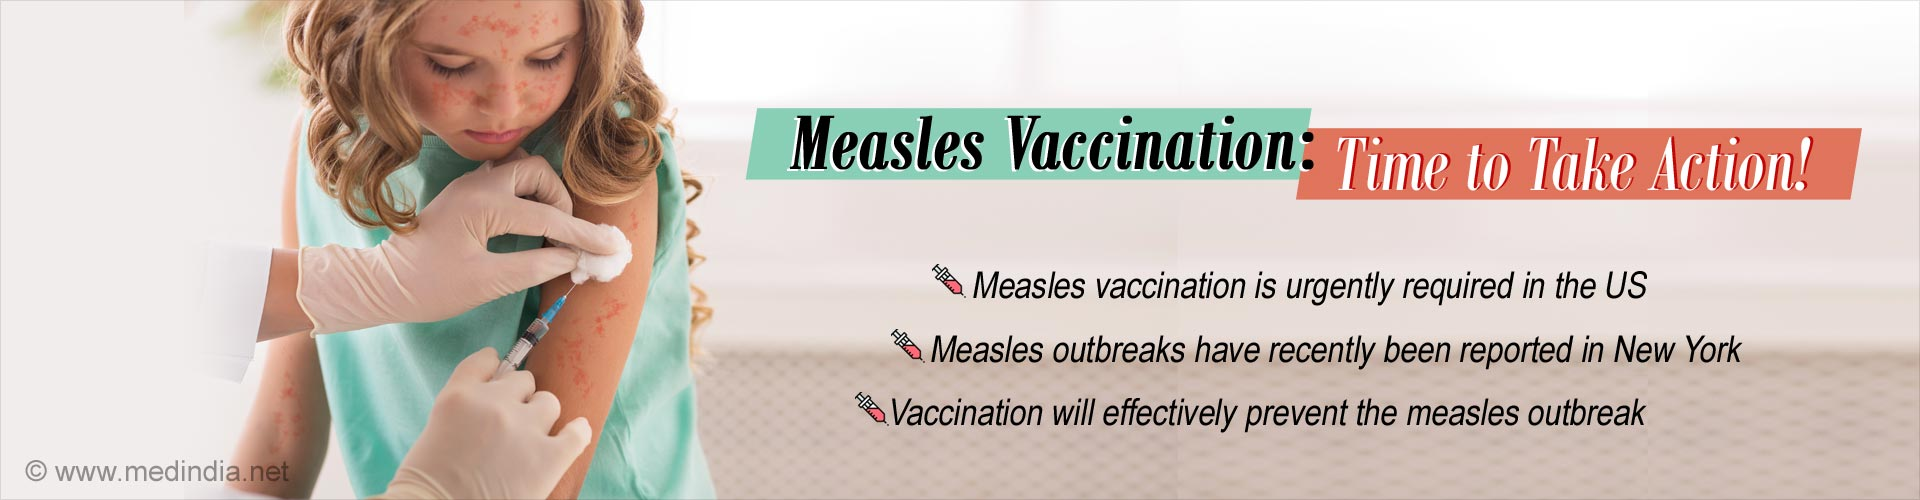 Measles Vaccination in the US: Need of the Hour!